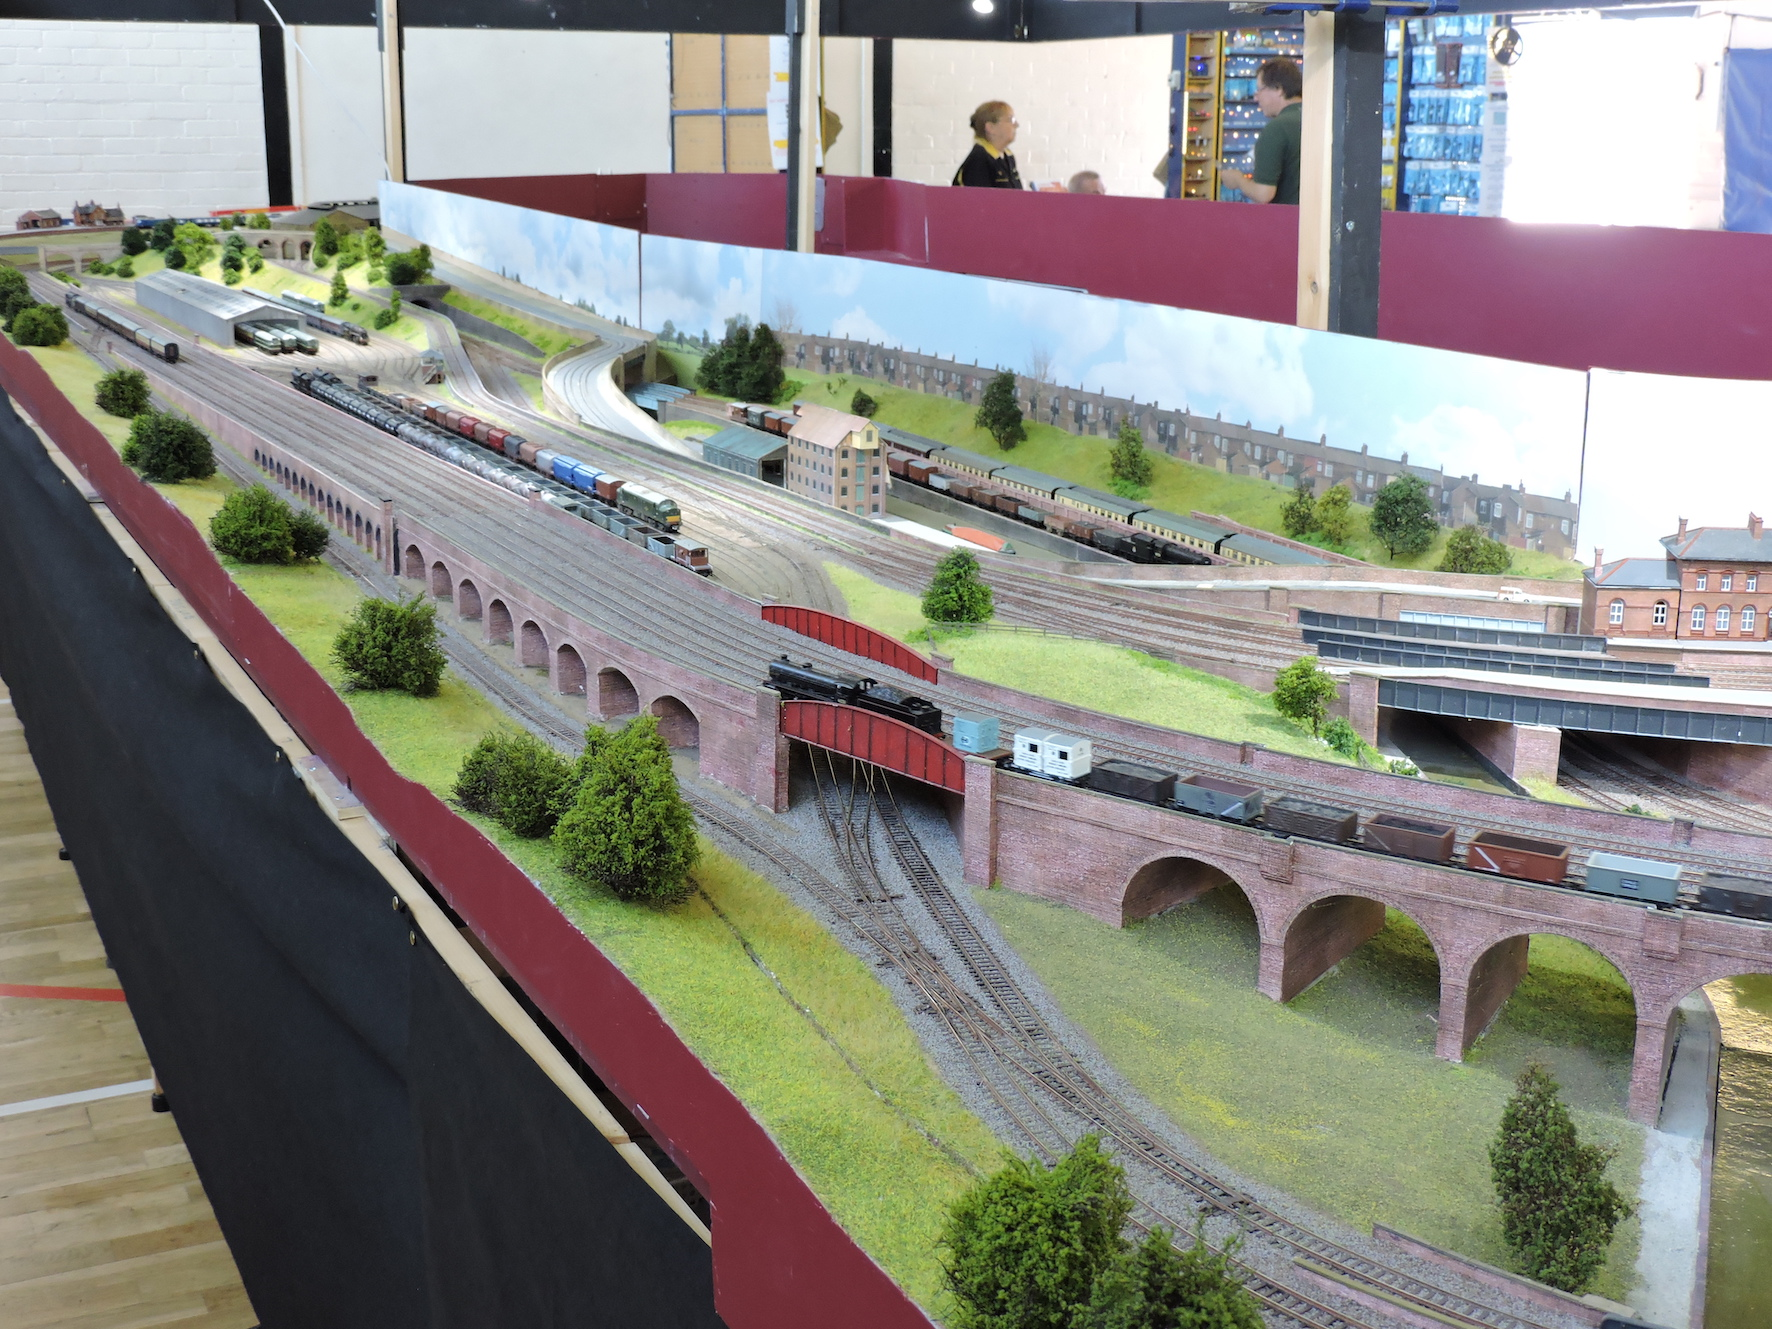 Rear of layout from viaduct corner